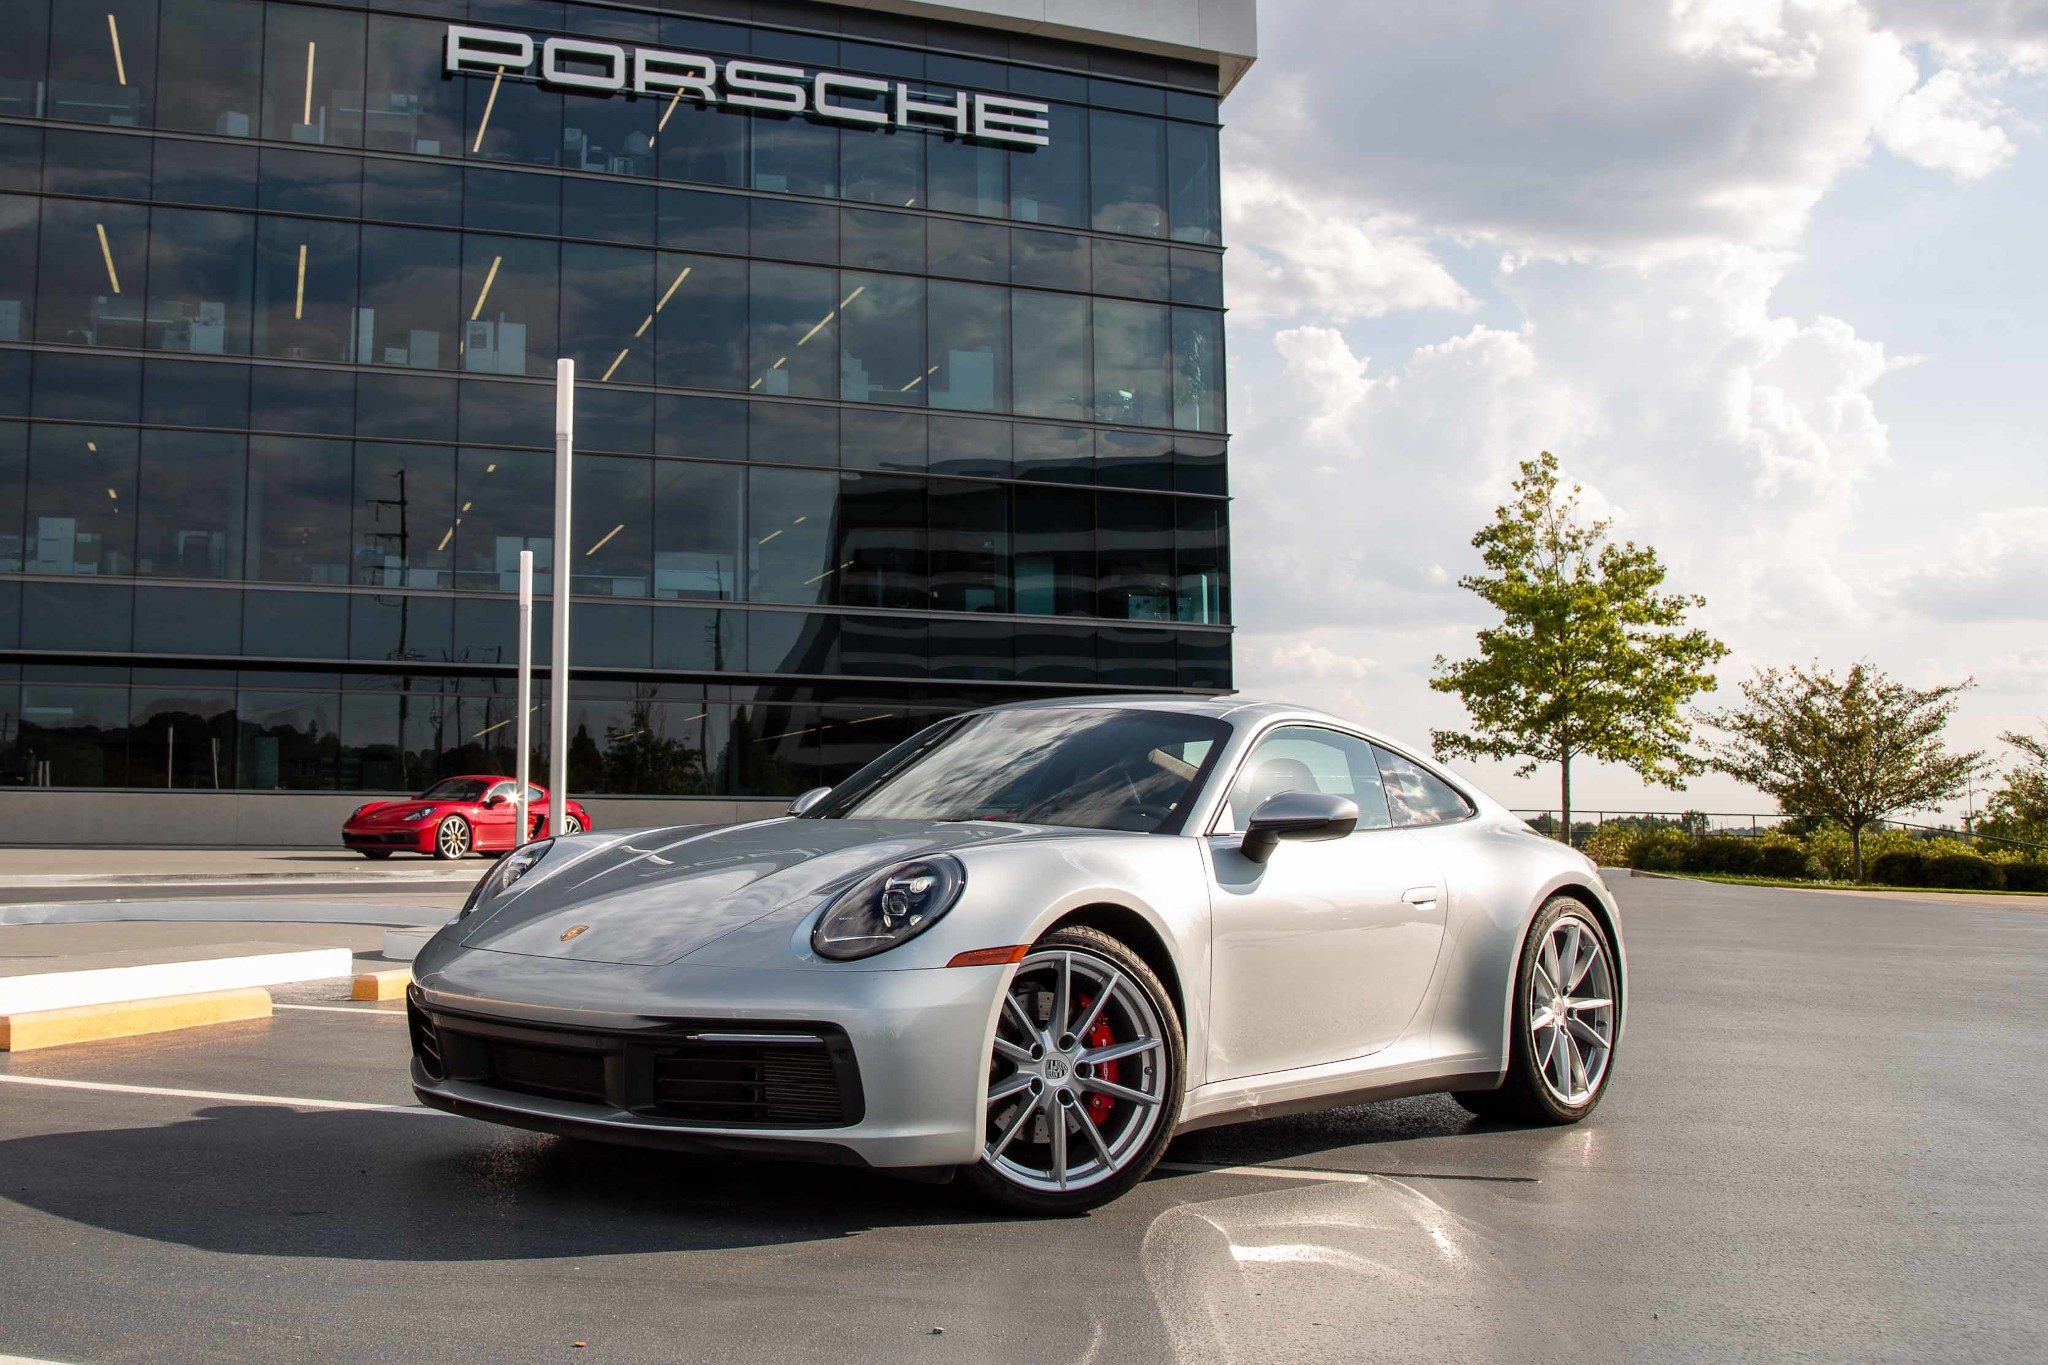 2020 Porsche 911 Review: Is There Such a Thing as Too Good?